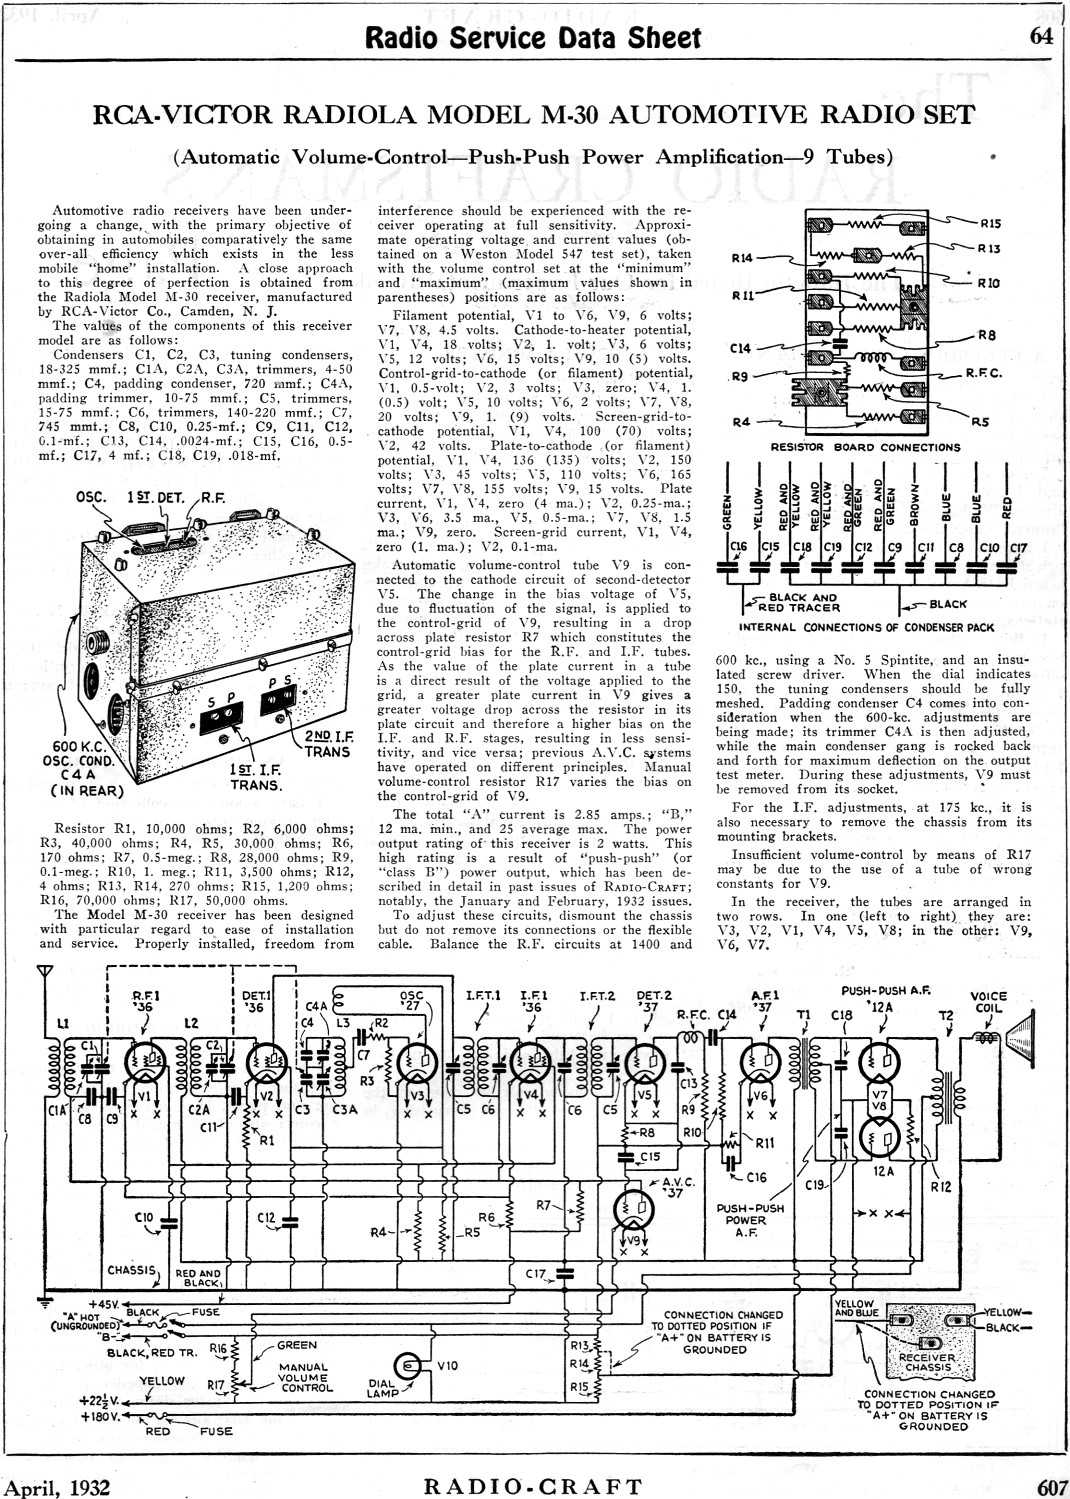 RCA-Victor Radiola Model M-30 Automotive Radio Set Radio Service Data  Sheet, ...